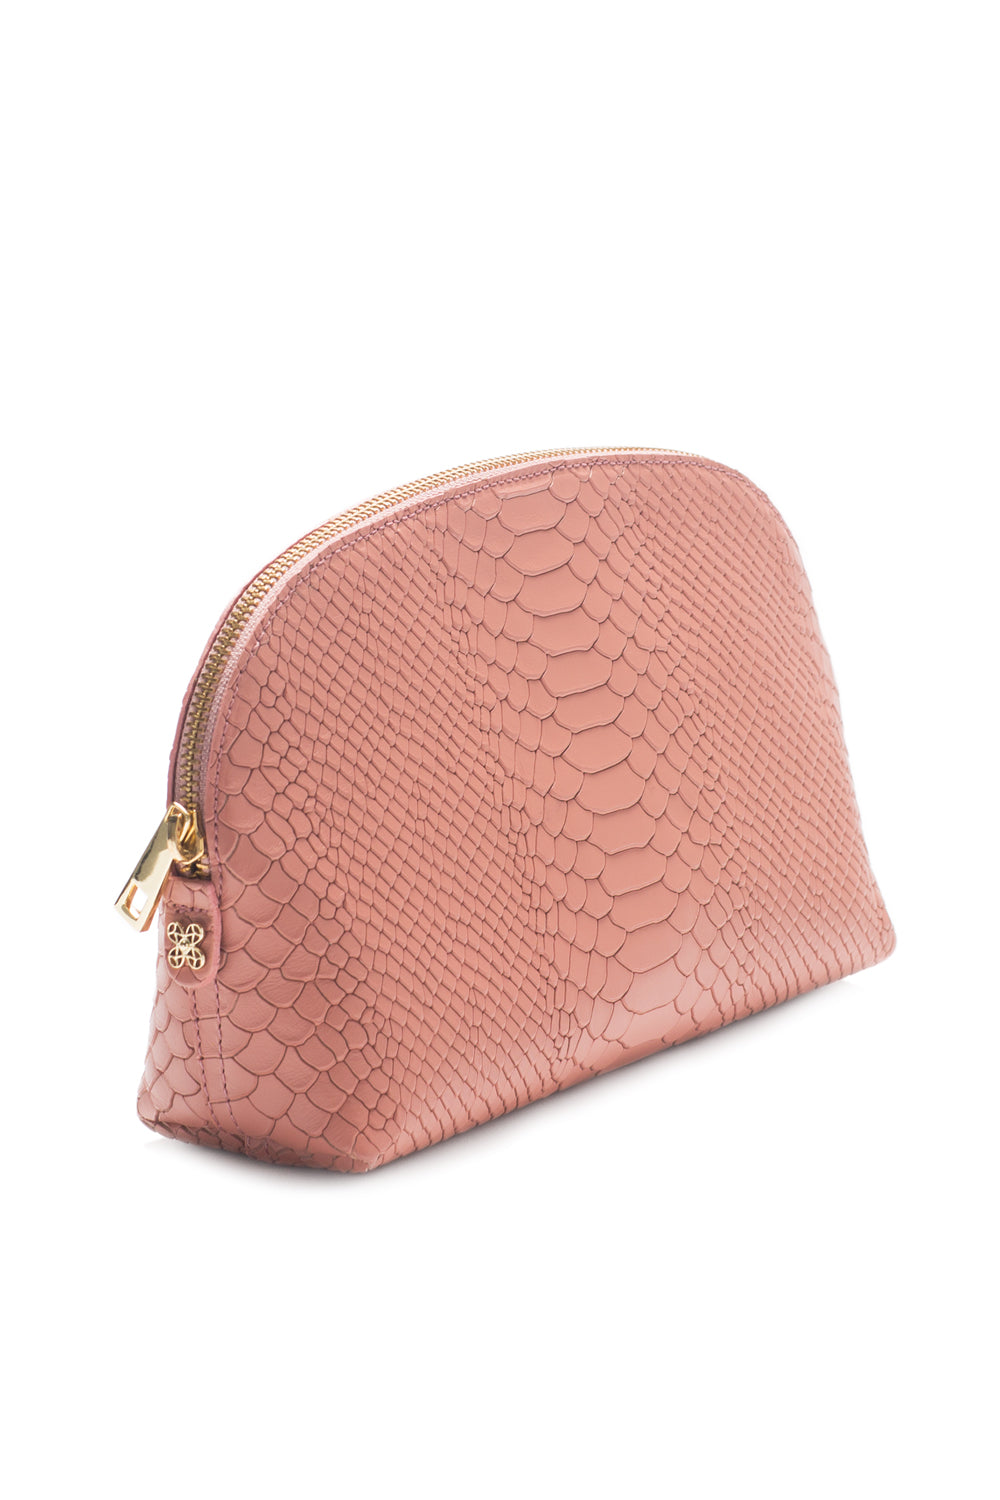 Cosmetics Clutch in Blush Snake-Effect Leather | Mel Boteri | Side View